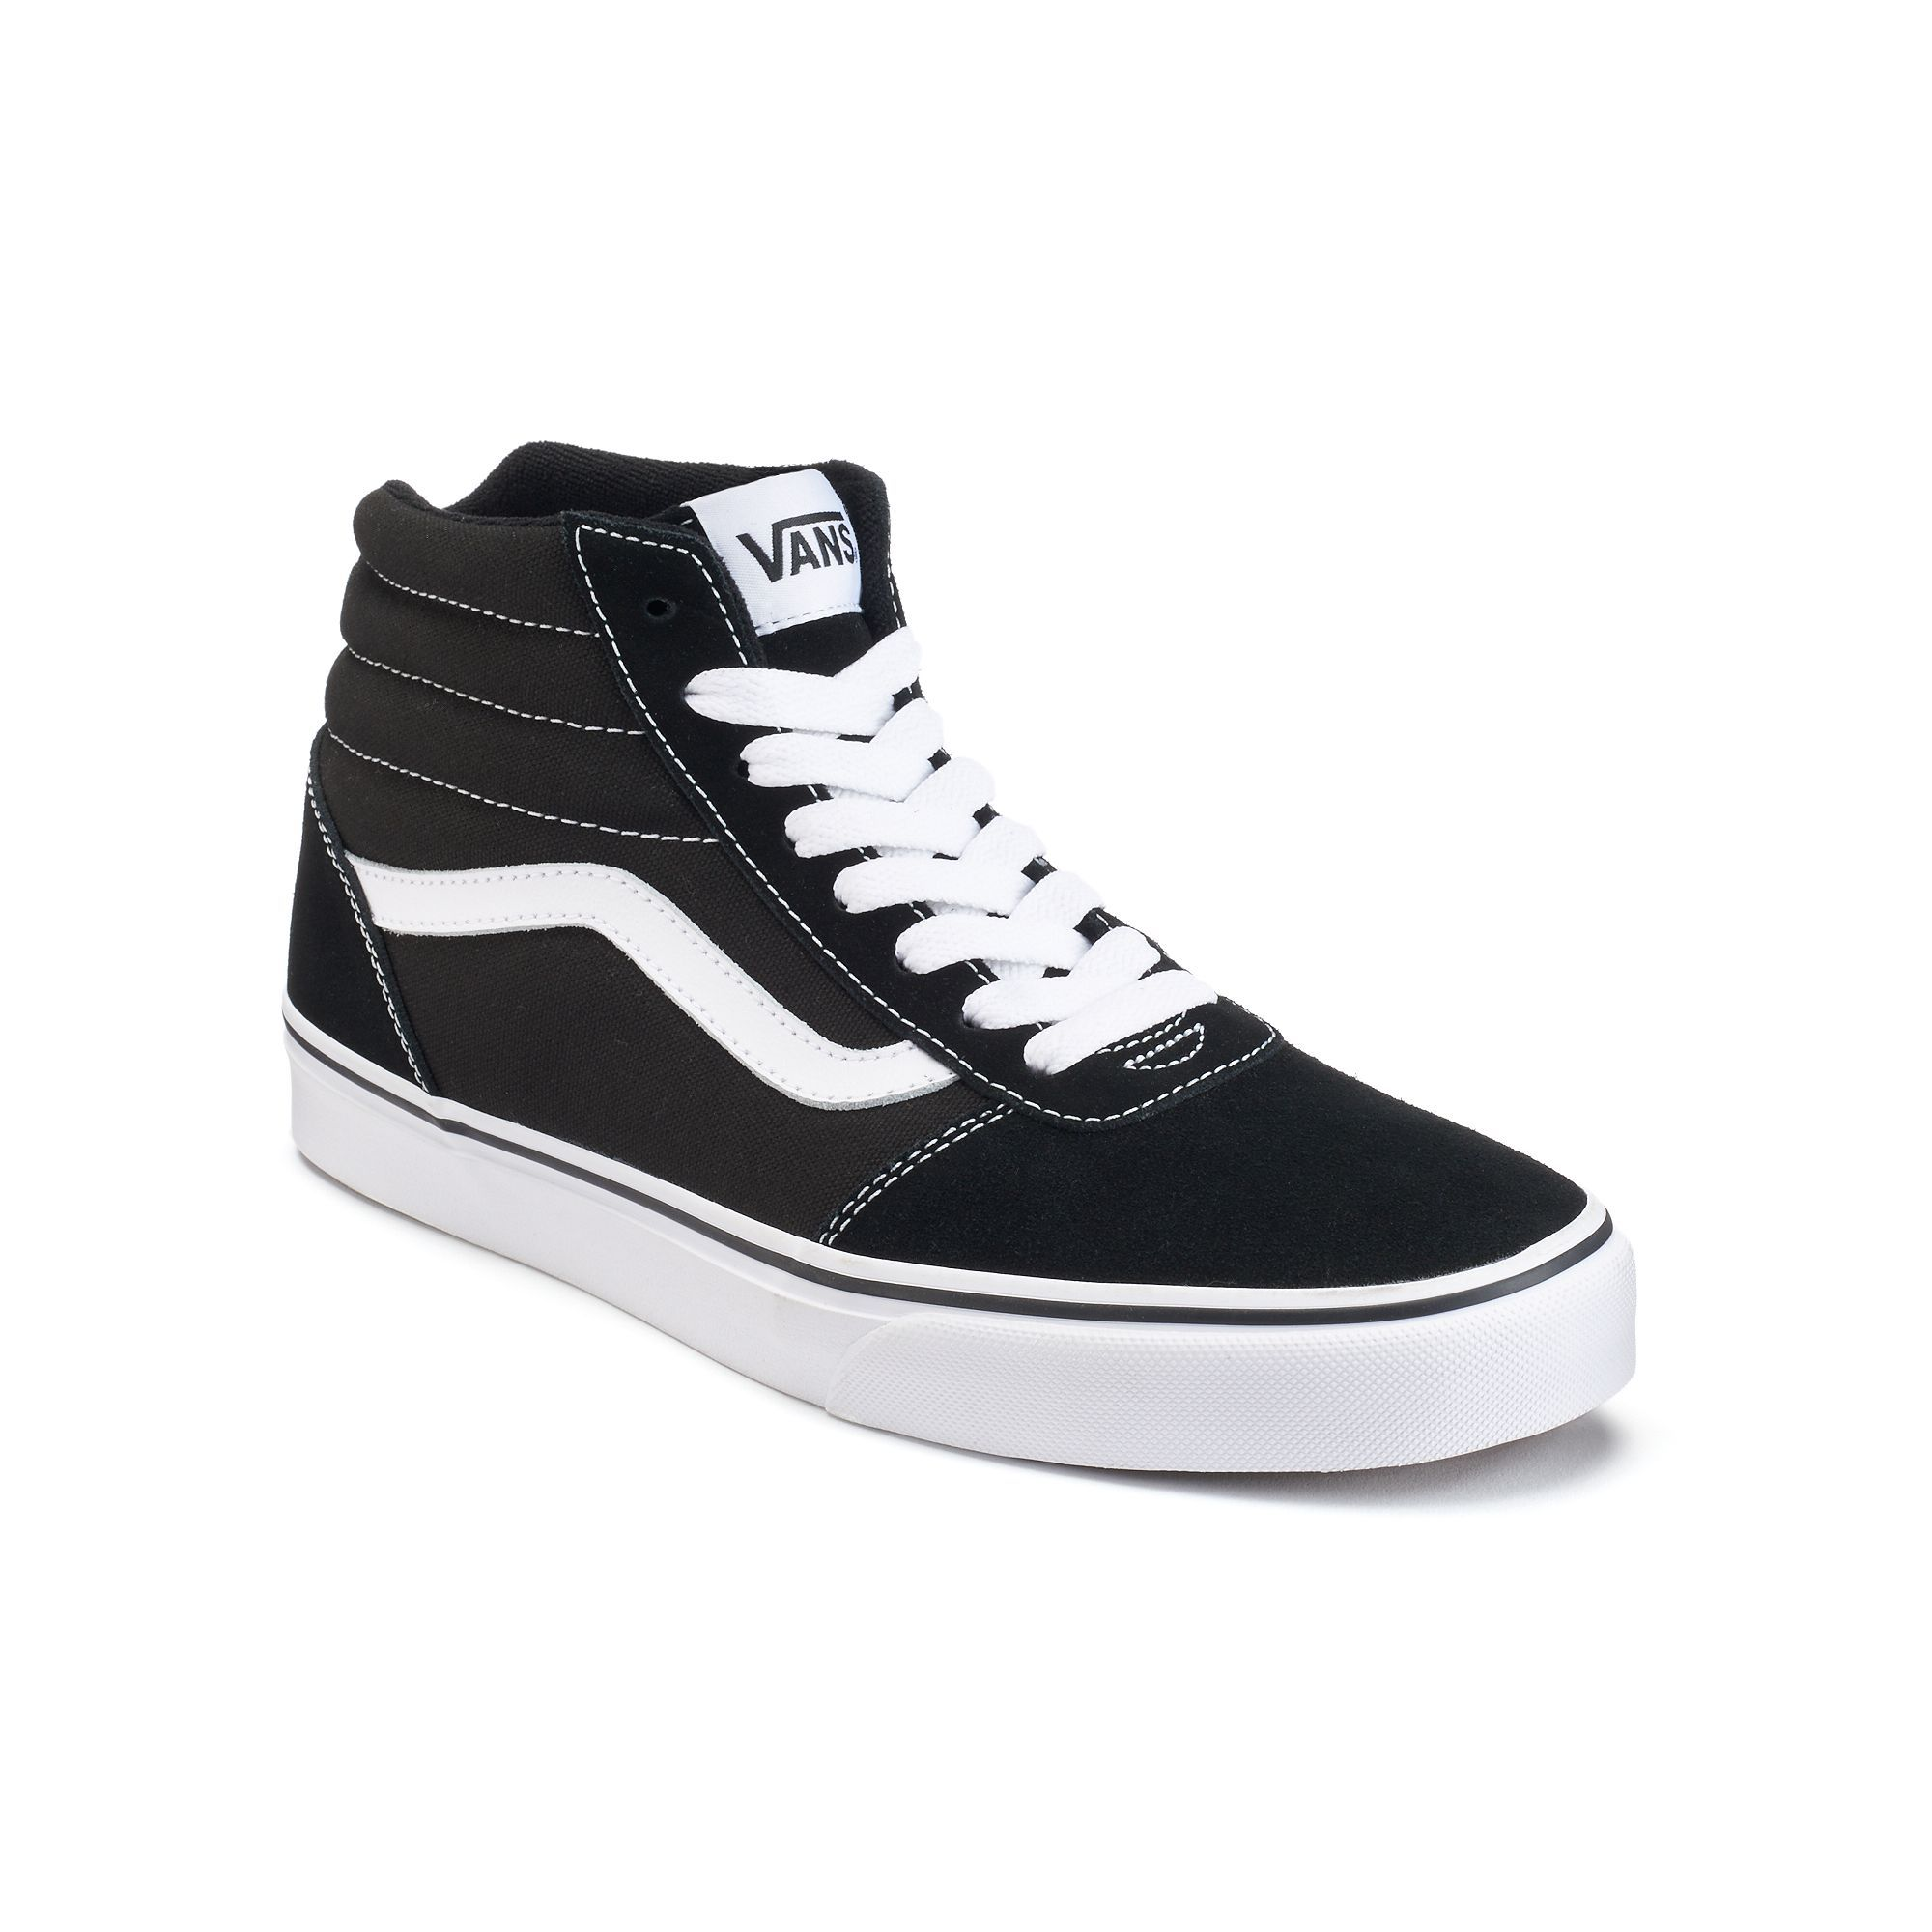 Vans Ward Hi Men s Suede Skate Shoes c1c72e93b